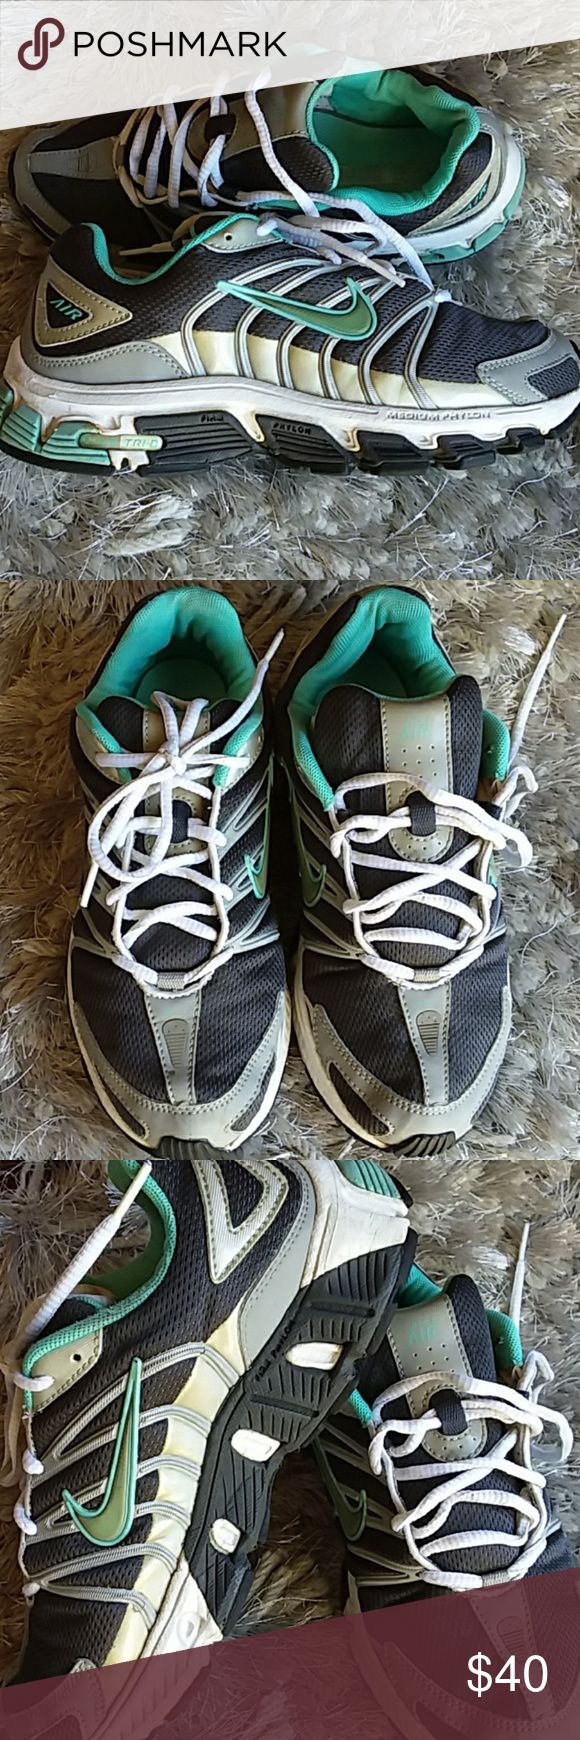 ◘ Nike Air Tri-d running shoes trainers 7.5 teal ◘ Very good condition - purchased for a job where I had to be standing for an entire shift. Then it was decided shoes had to be all white or black color, so I couldn't wear all my expensive shoes any longer!  Both Firm and Medium (layered) support on these soles, see pics. Please see all pics to detail condition. I'm very open to offers on these shoes. Size 7.5 Nike Shoes Athletic Shoes